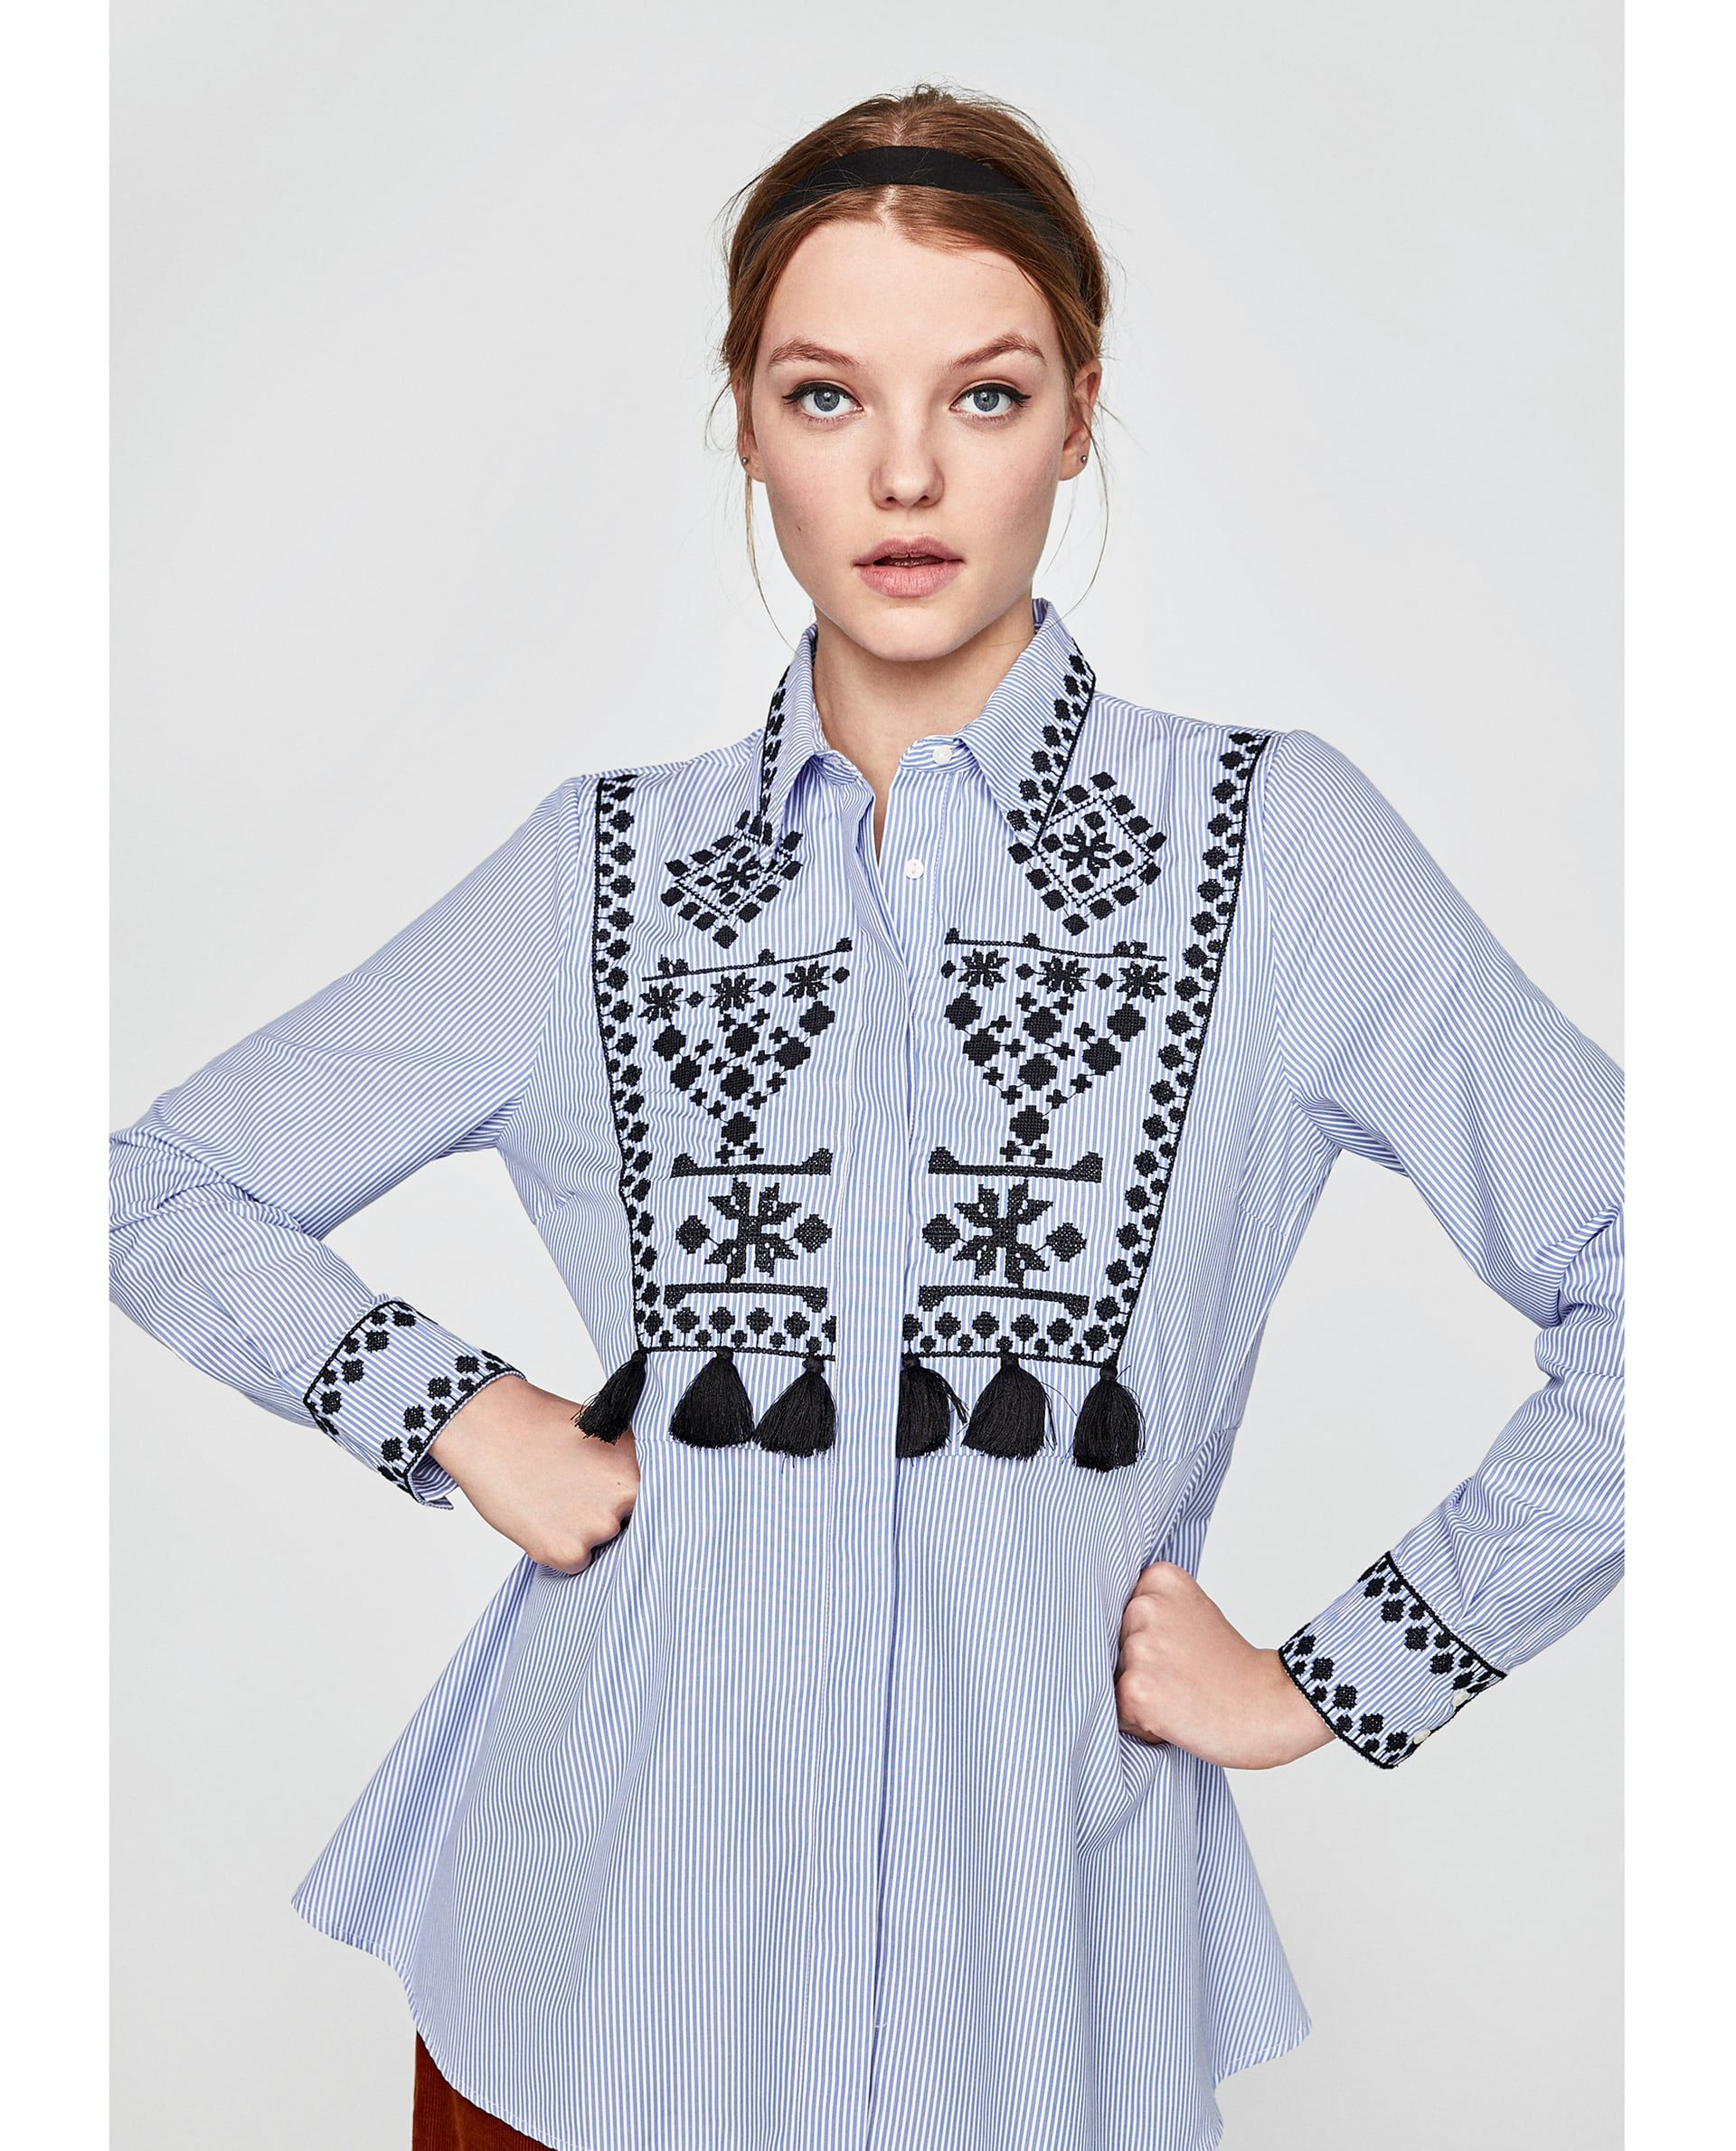 3da3a127 STRIPED SHIRT WITH EMBROIDERY AND TASSELS from Zara #zara #newarrivals  #fashion #spring #summer #outfits #trending #editorial #maternity #tassel  #blouses ...